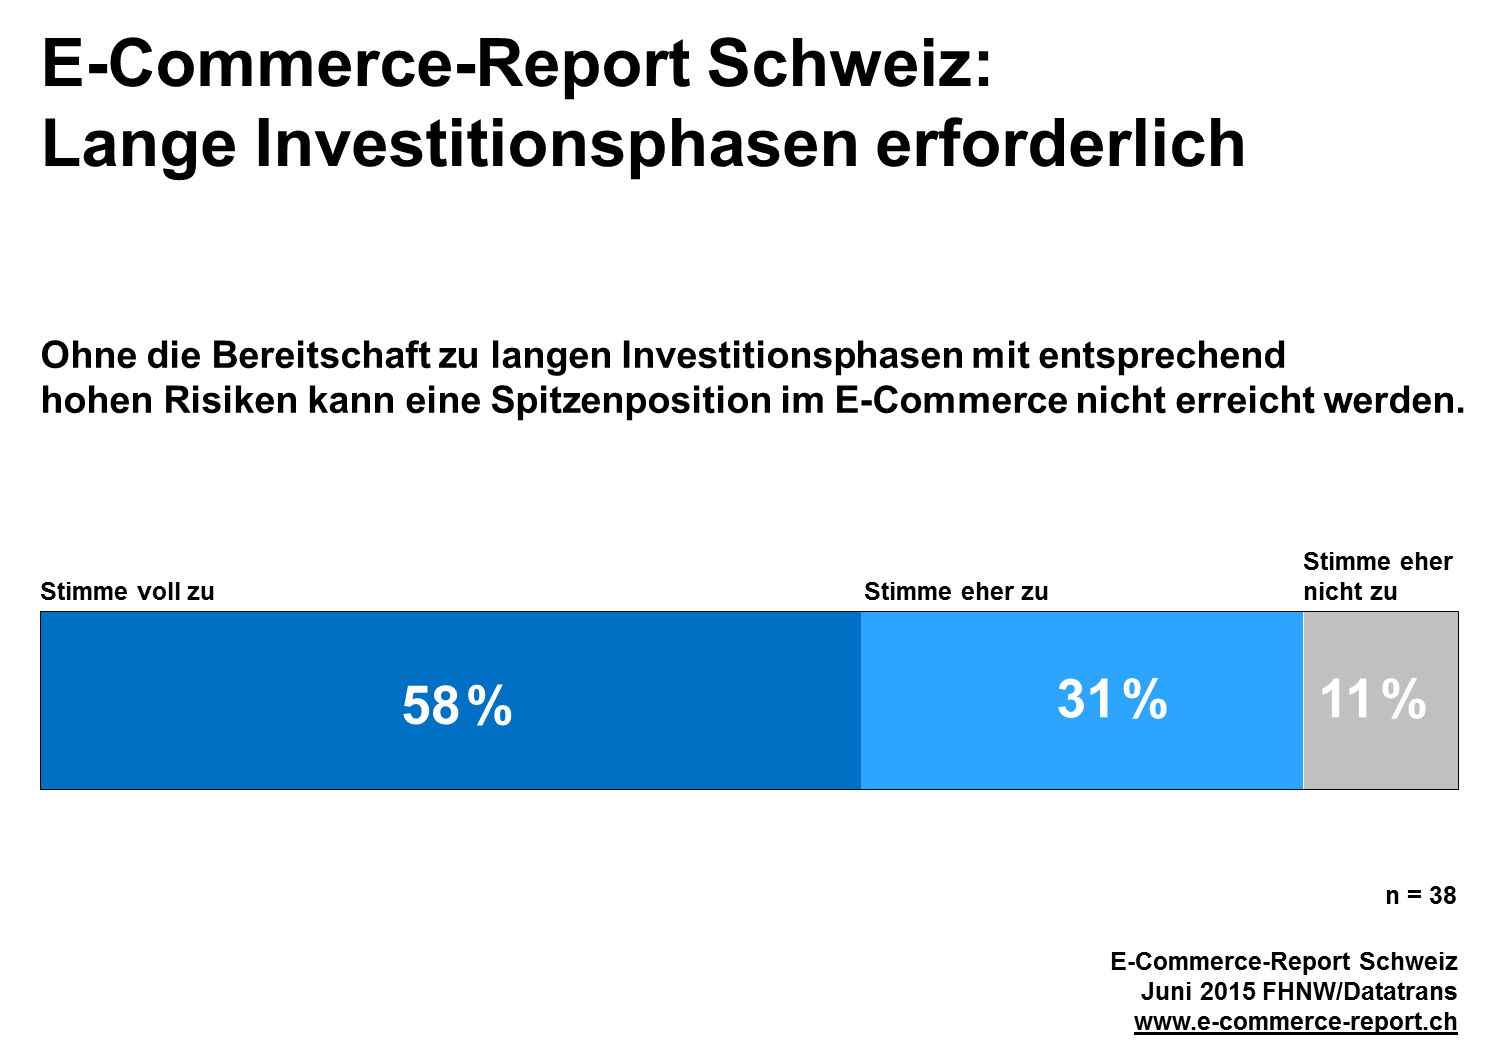 Lange Investitiontsphasen erforderlich - Grafik: E-Commerce Report 2015 der FHNW